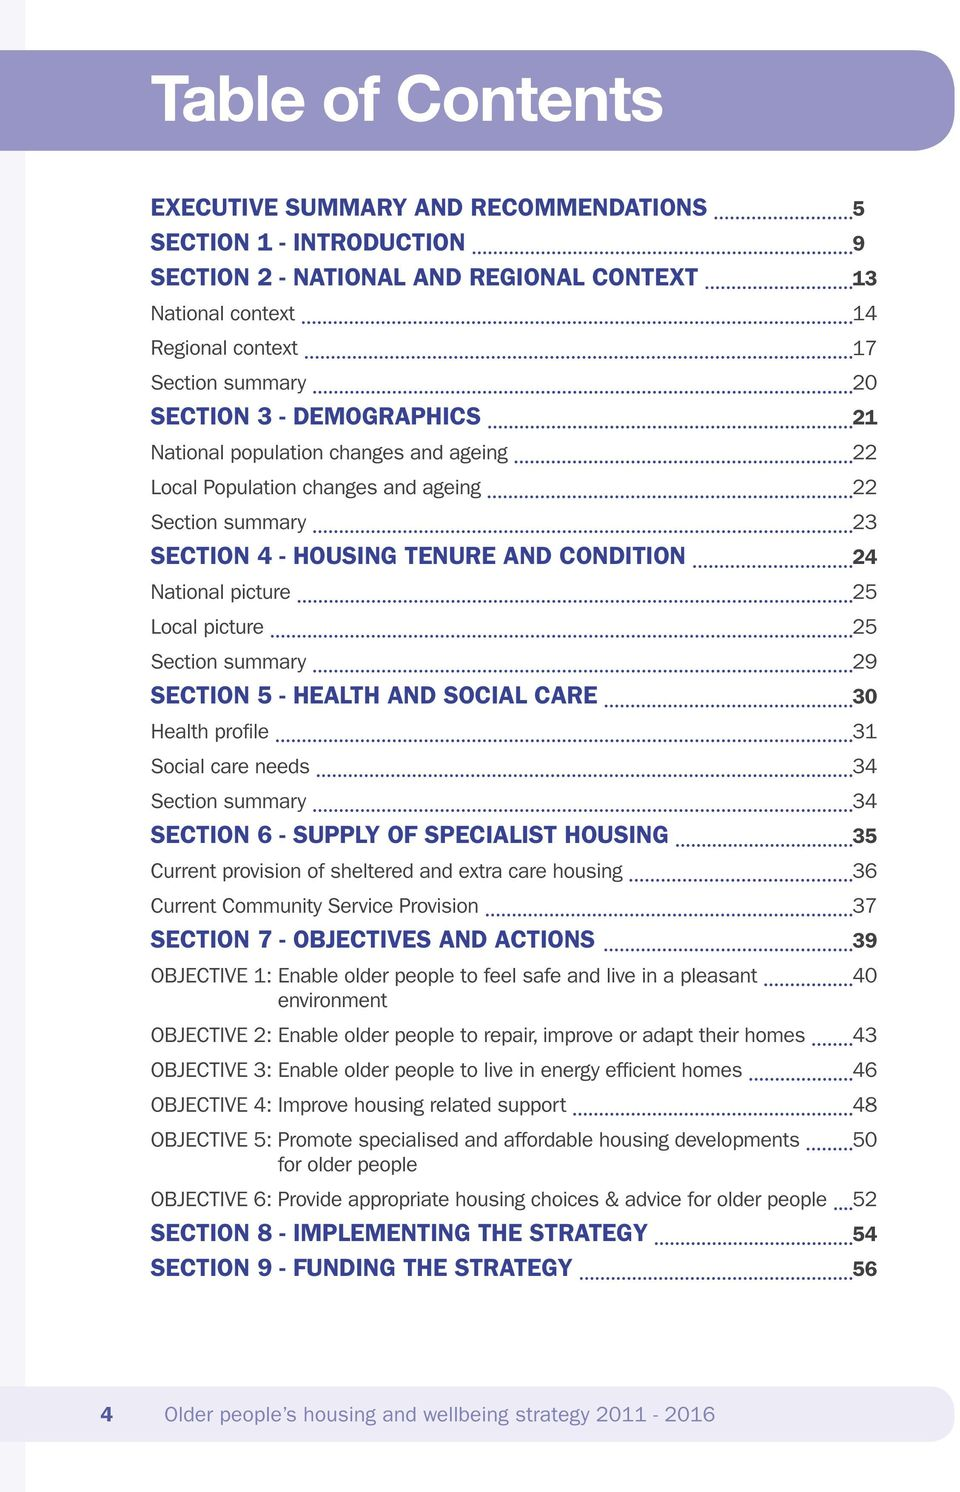 Section summary 29 SECTION 5 - HEALTH AND SOCIAL CARE 30 Health profile 31 Social care needs 34 Section summary 34 SECTION 6 - SUPPLY OF SPECIALIST HOUSING 35 Current provision of sheltered and extra